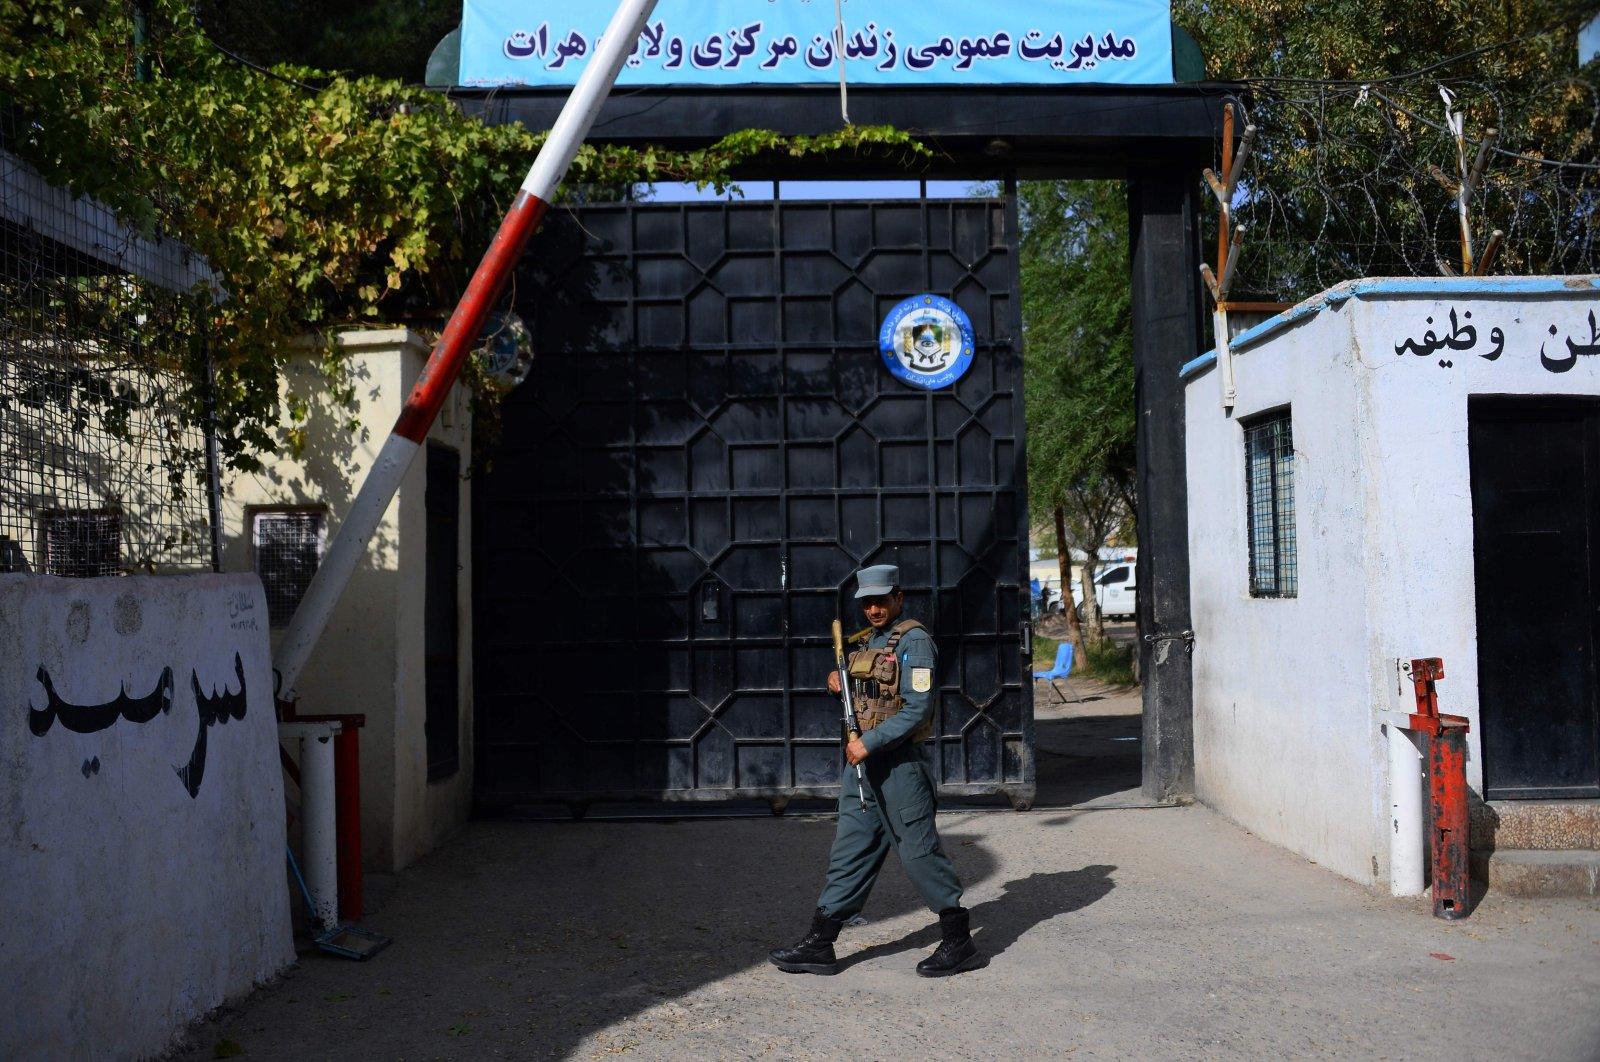 An Afghan policeman stands guard at an entrance gate of a prison, Herat, Afghanistan, Oct. 29, 2020. (AFP Photo)